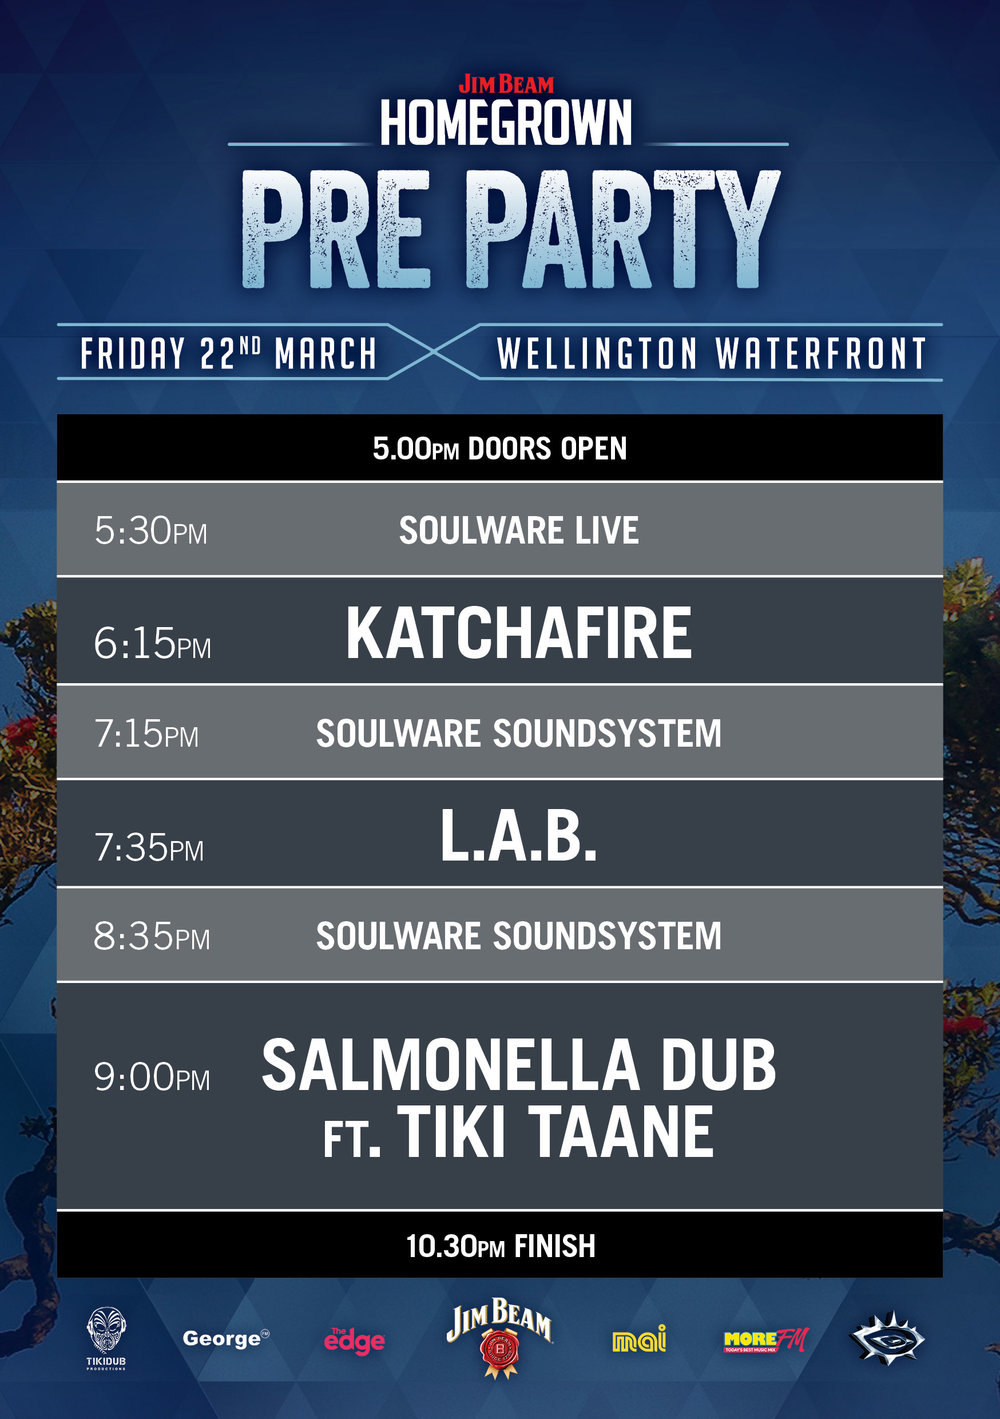 HG_PRE-PARTY-SCHED-FINAL.jpg